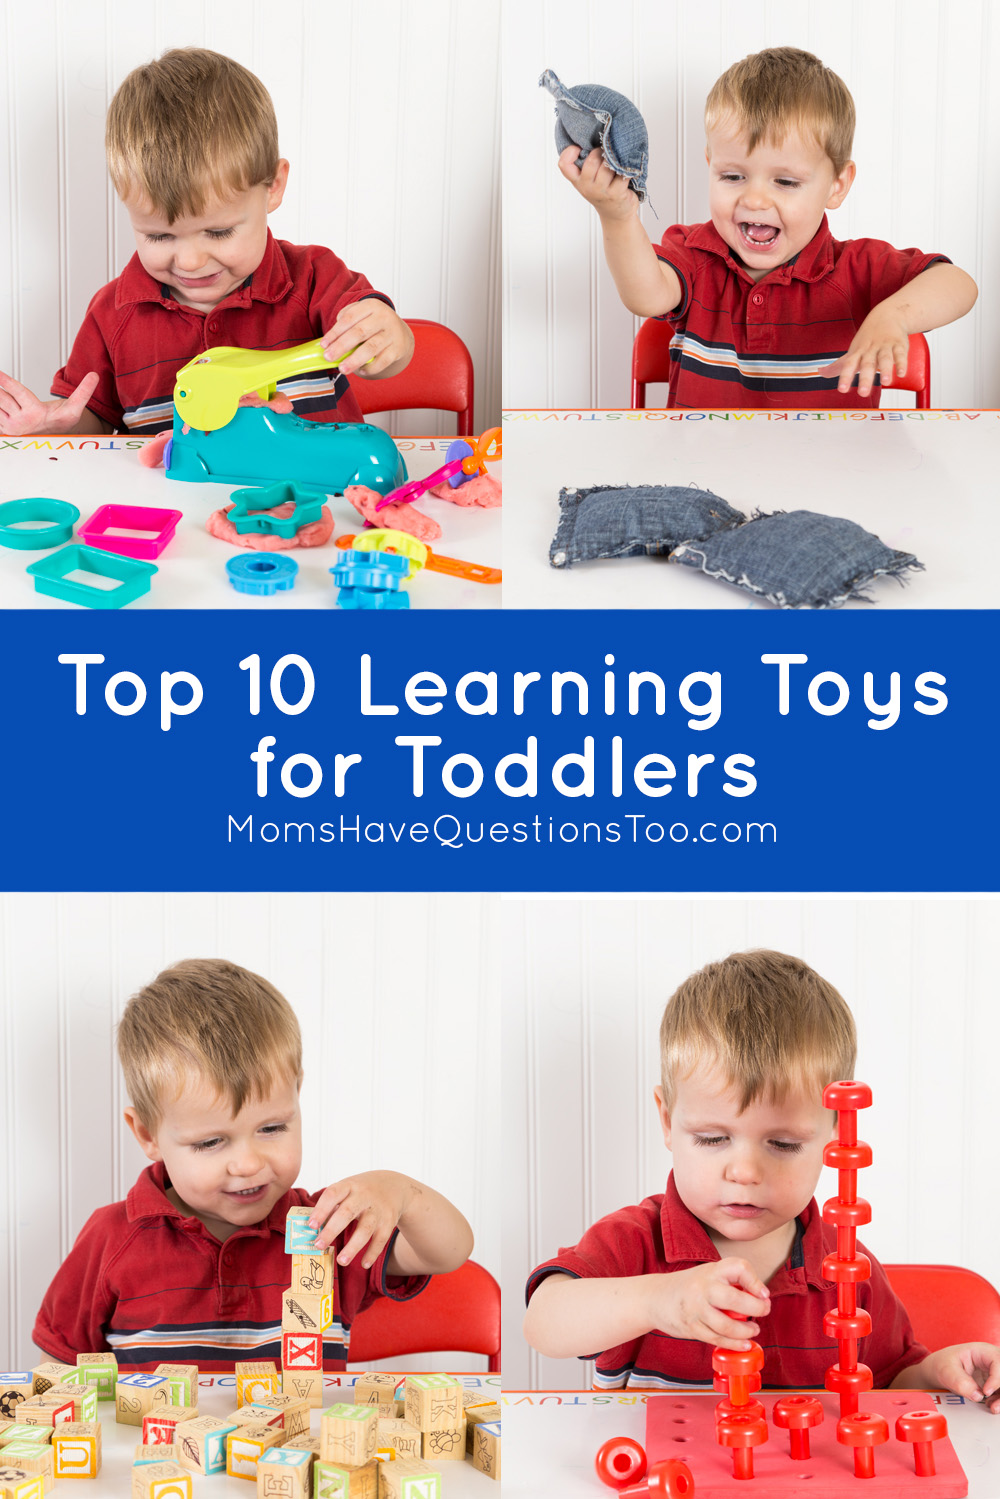 Hottest Toys Learning : Top learning toys for toddlers